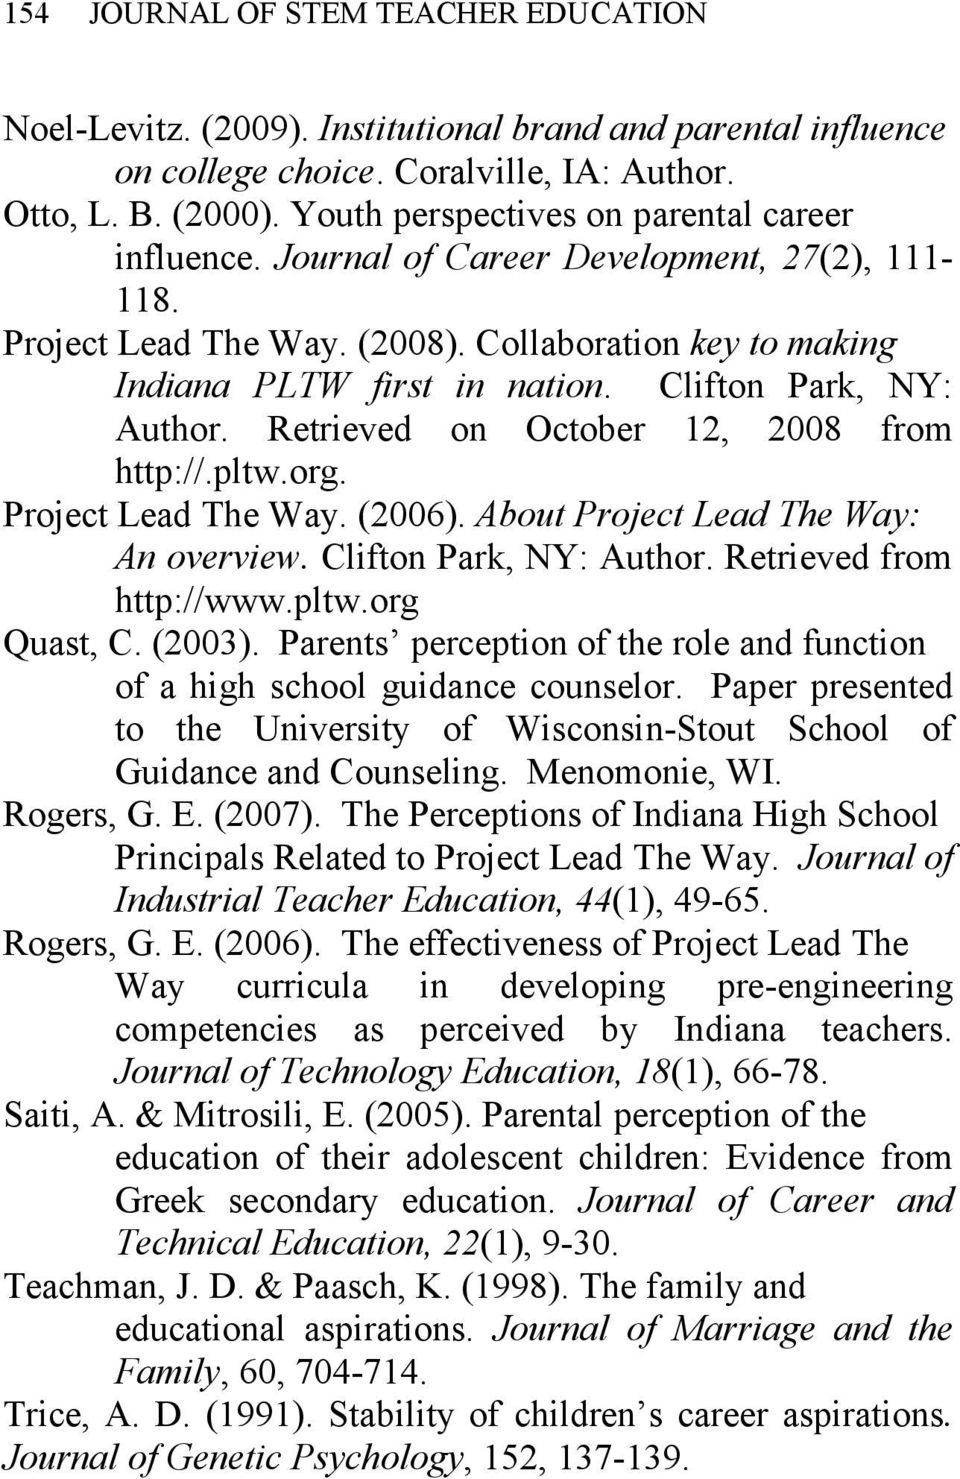 Clifton Park, NY: Author. Retrieved on October 12, 2008 from http://.pltw.org. Project Lead The Way. (2006). About Project Lead The Way: An overview. Clifton Park, NY: Author.